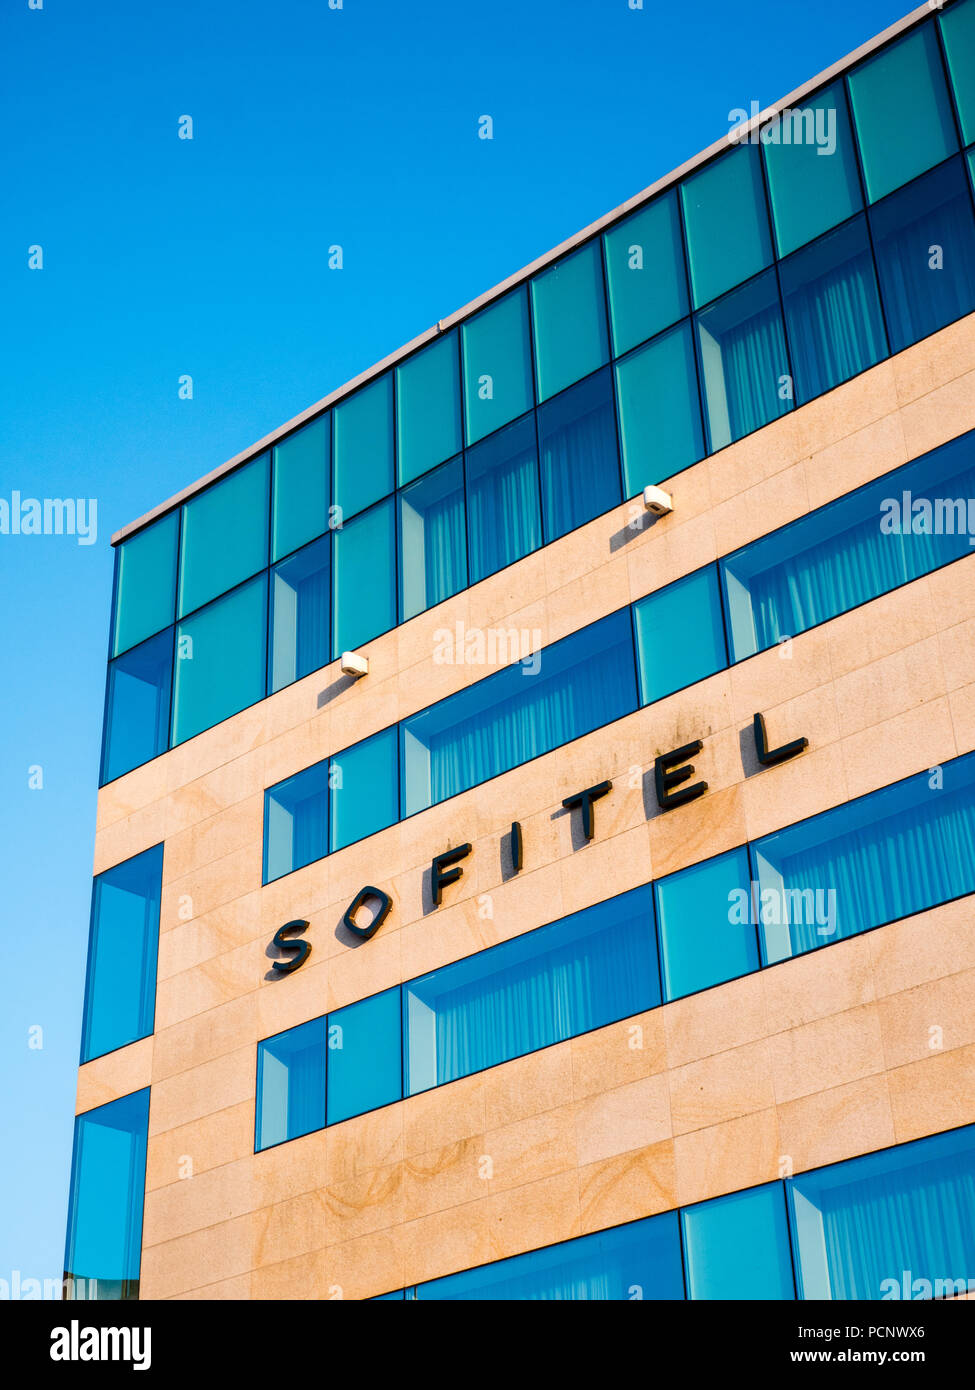 Sofitel Luxury Airport Hotel, Terminal 5, Heathrow Airport, London, England, UK, GB. - Stock Image